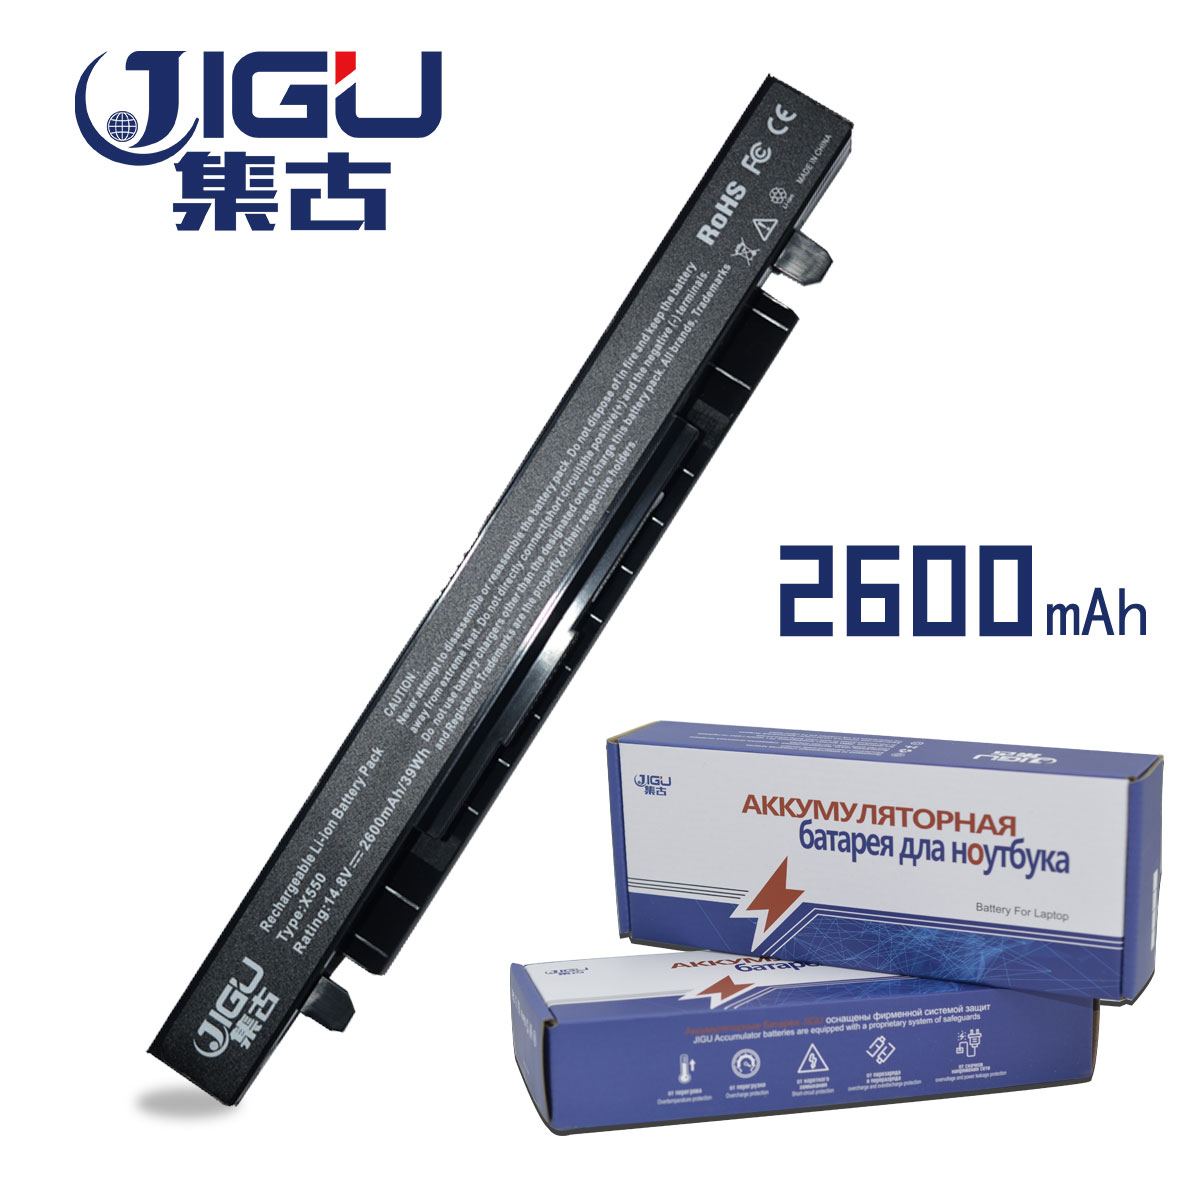 JIGU Laptop Battery For ASUS A41-X550 A41-X550A X550 X550C X550B X550V X550D X450C X452 4 Cell